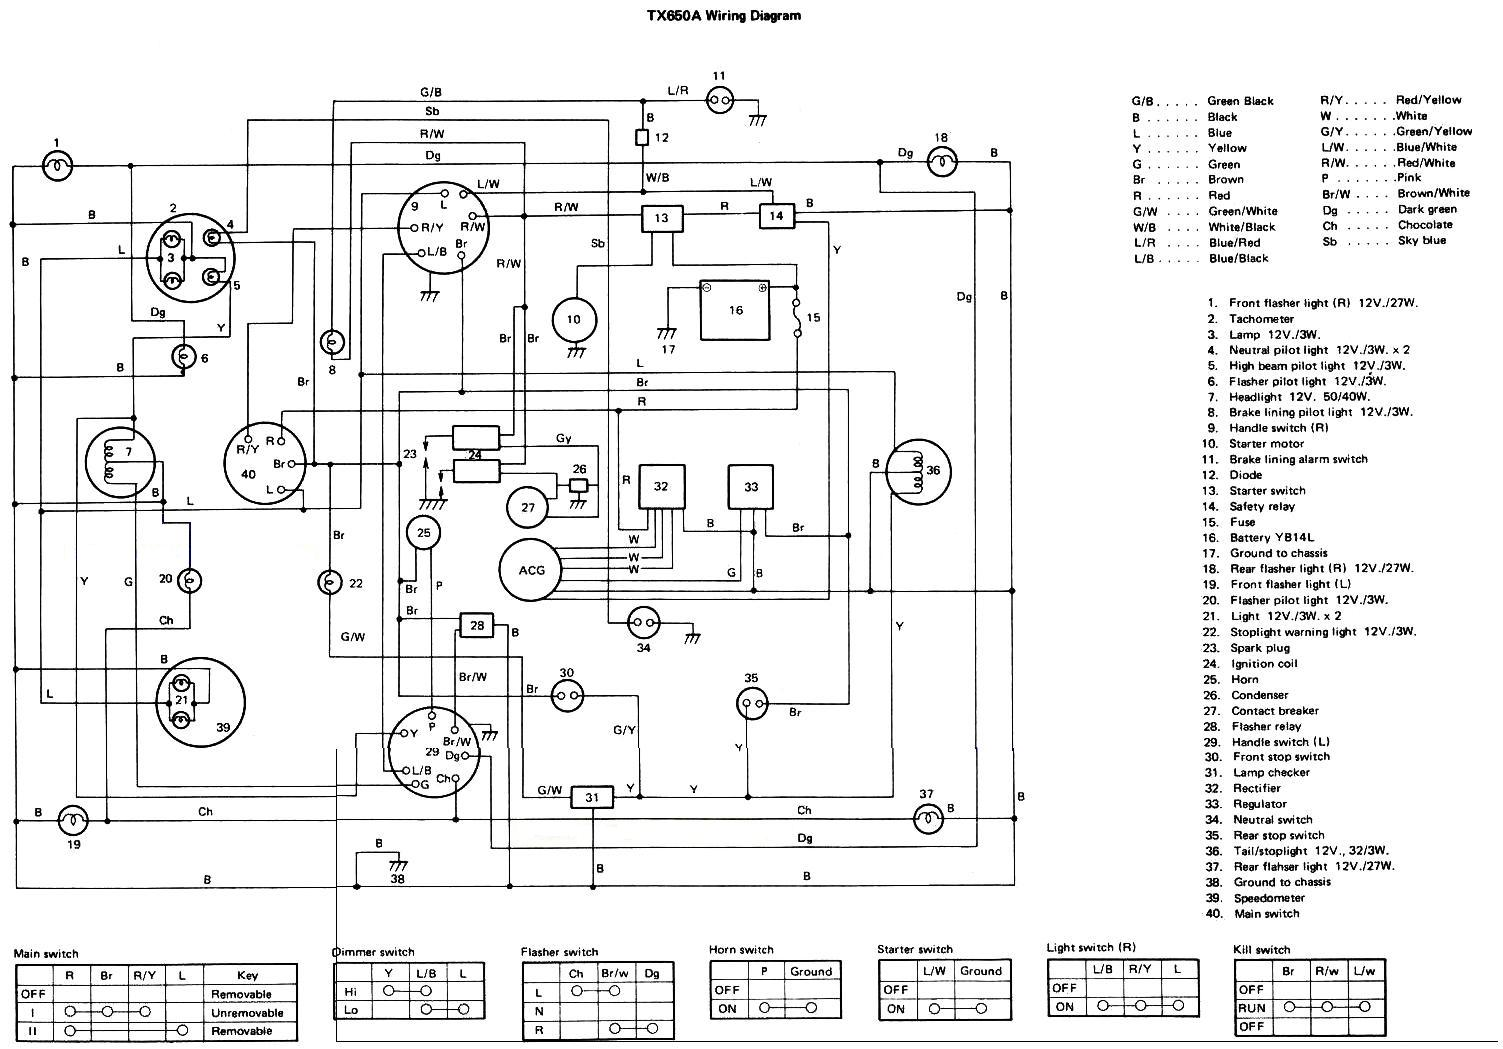 1981 Yamaha Xt 250 Wiring Diagram : 33 Wiring Diagram